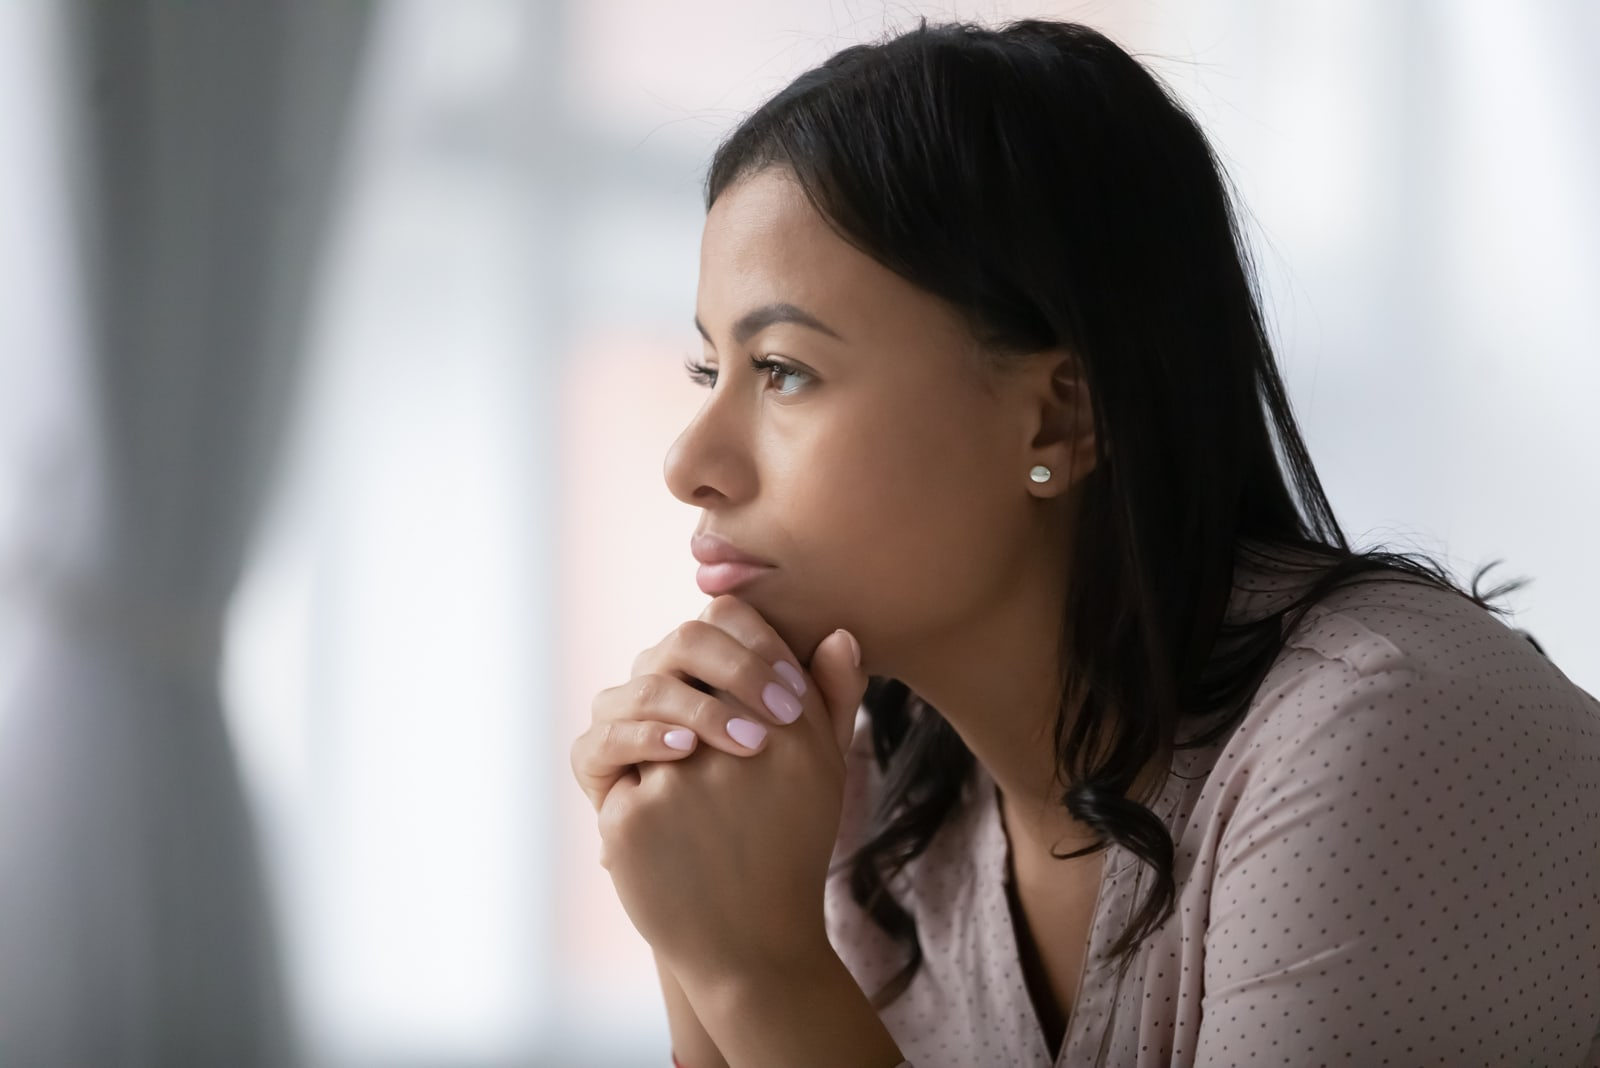 young woman look in distance pondering